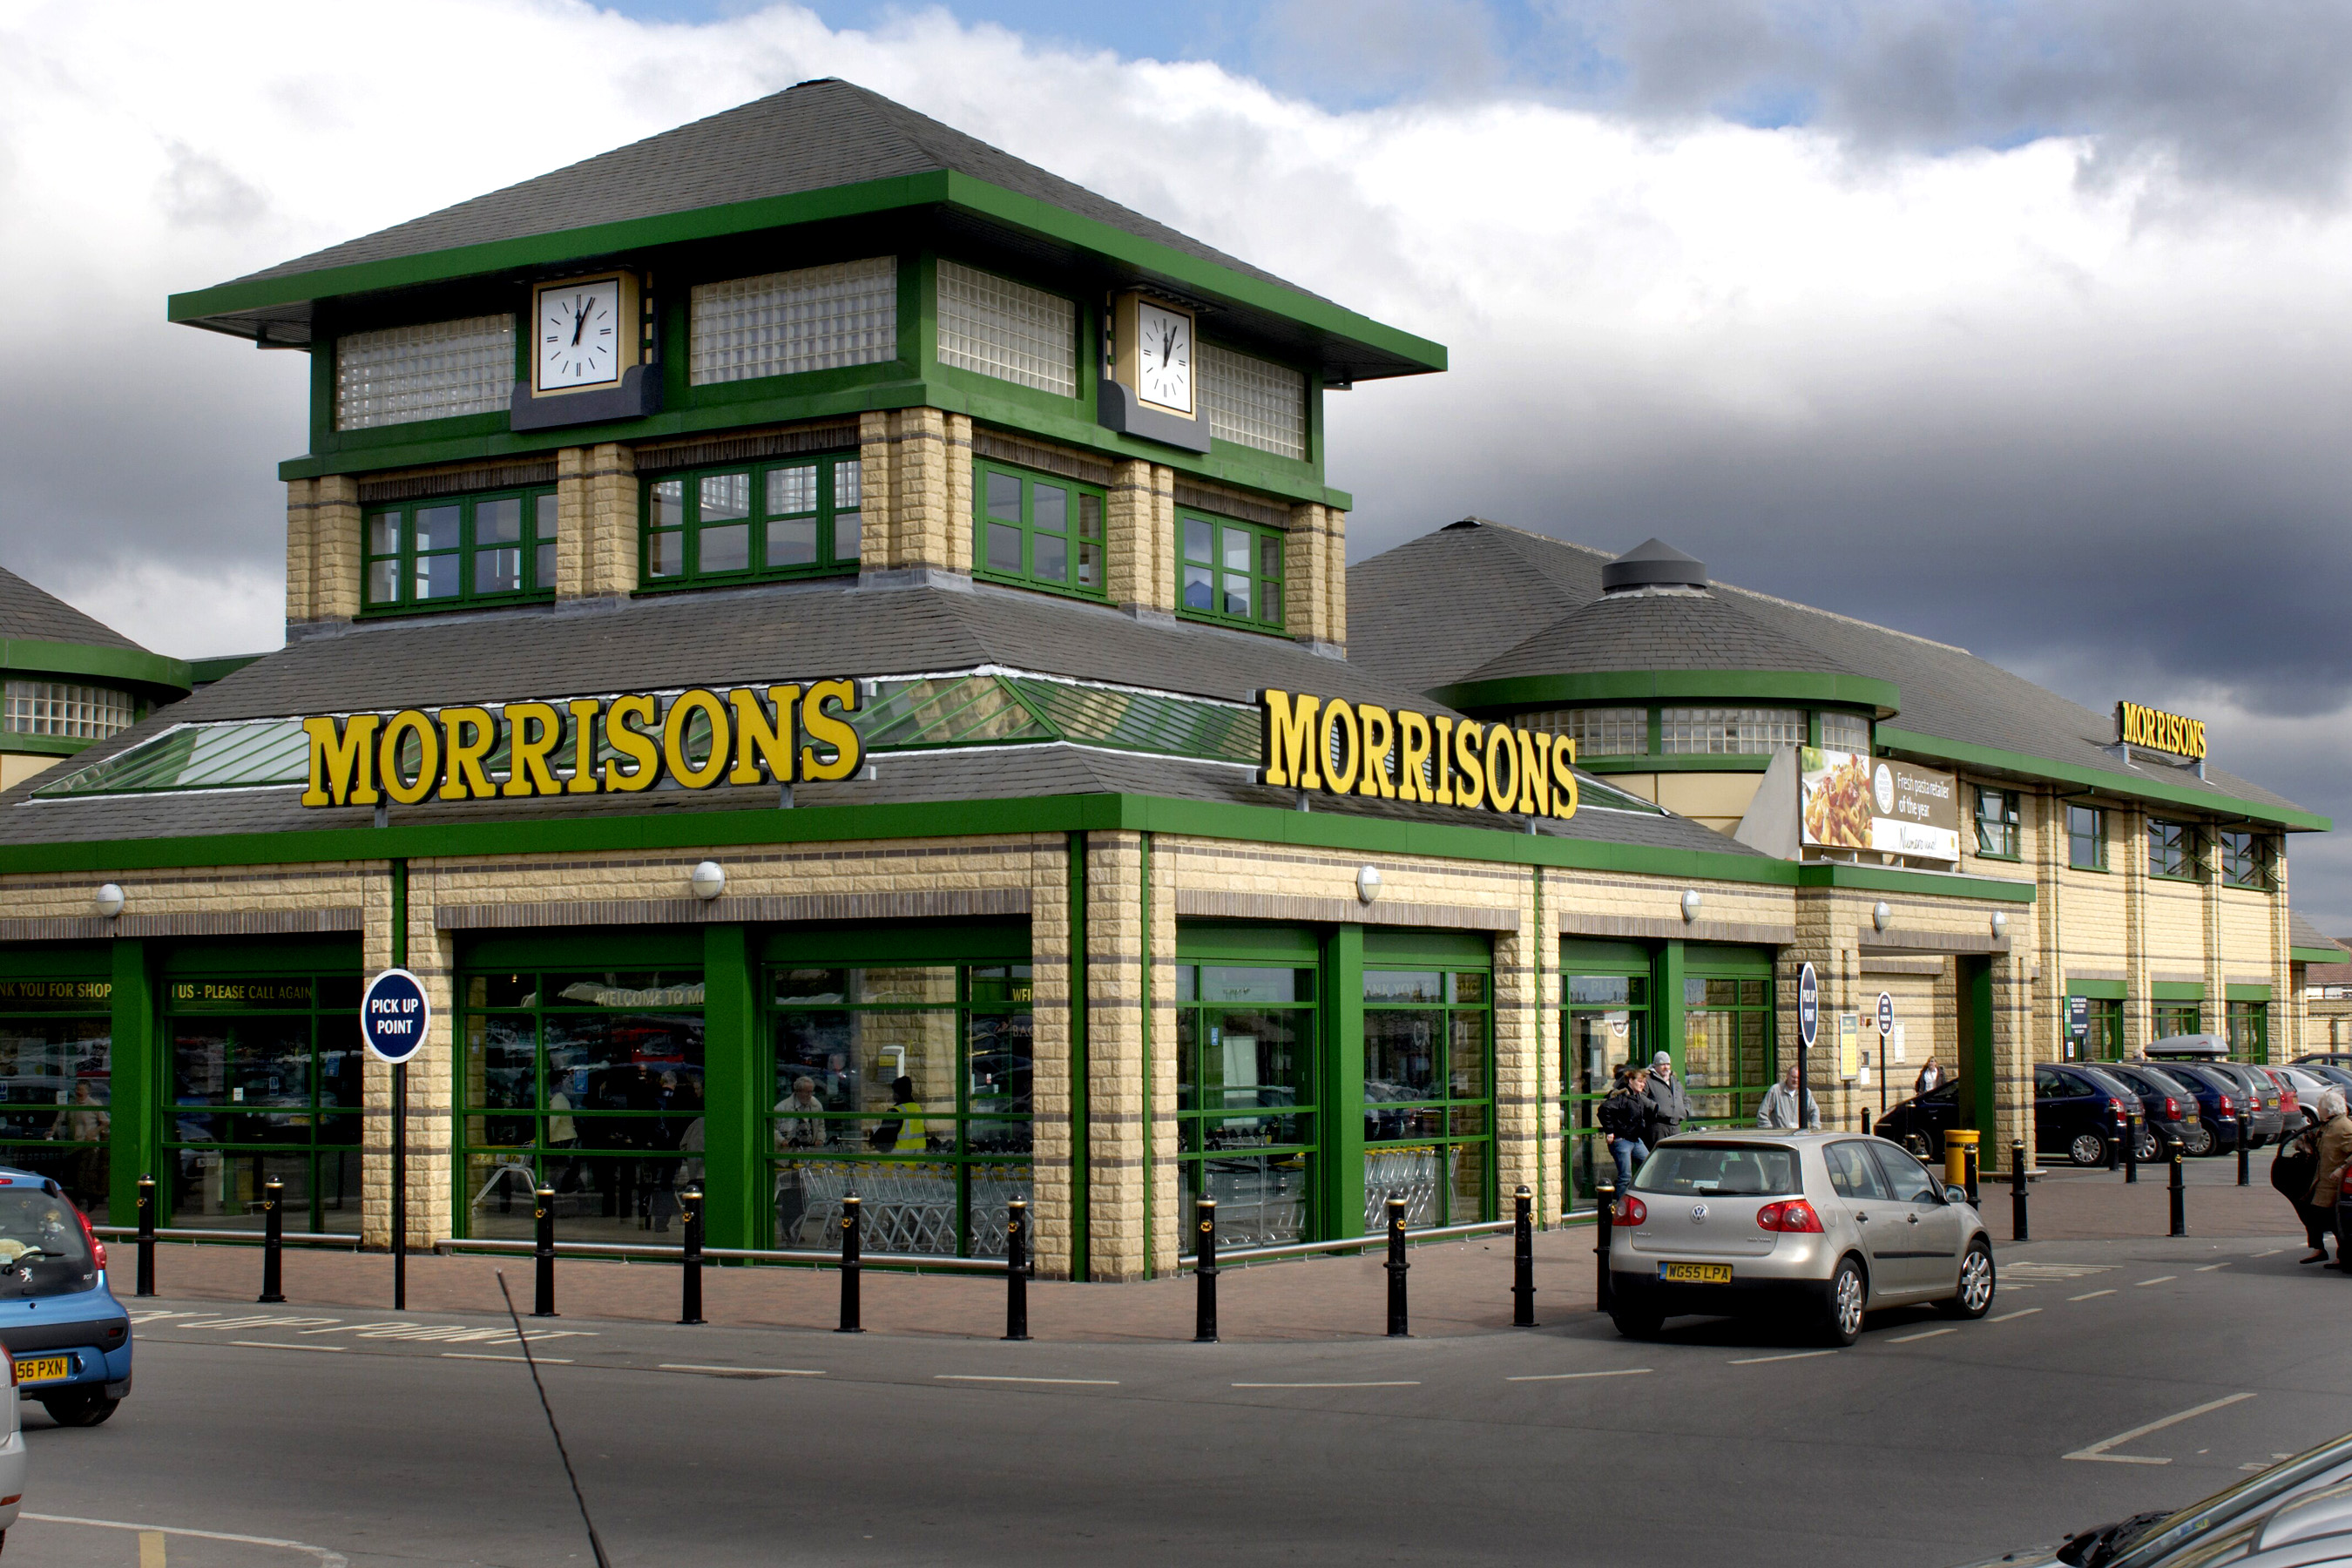 Morrisons Staff To Receive Compensation After Data Breach